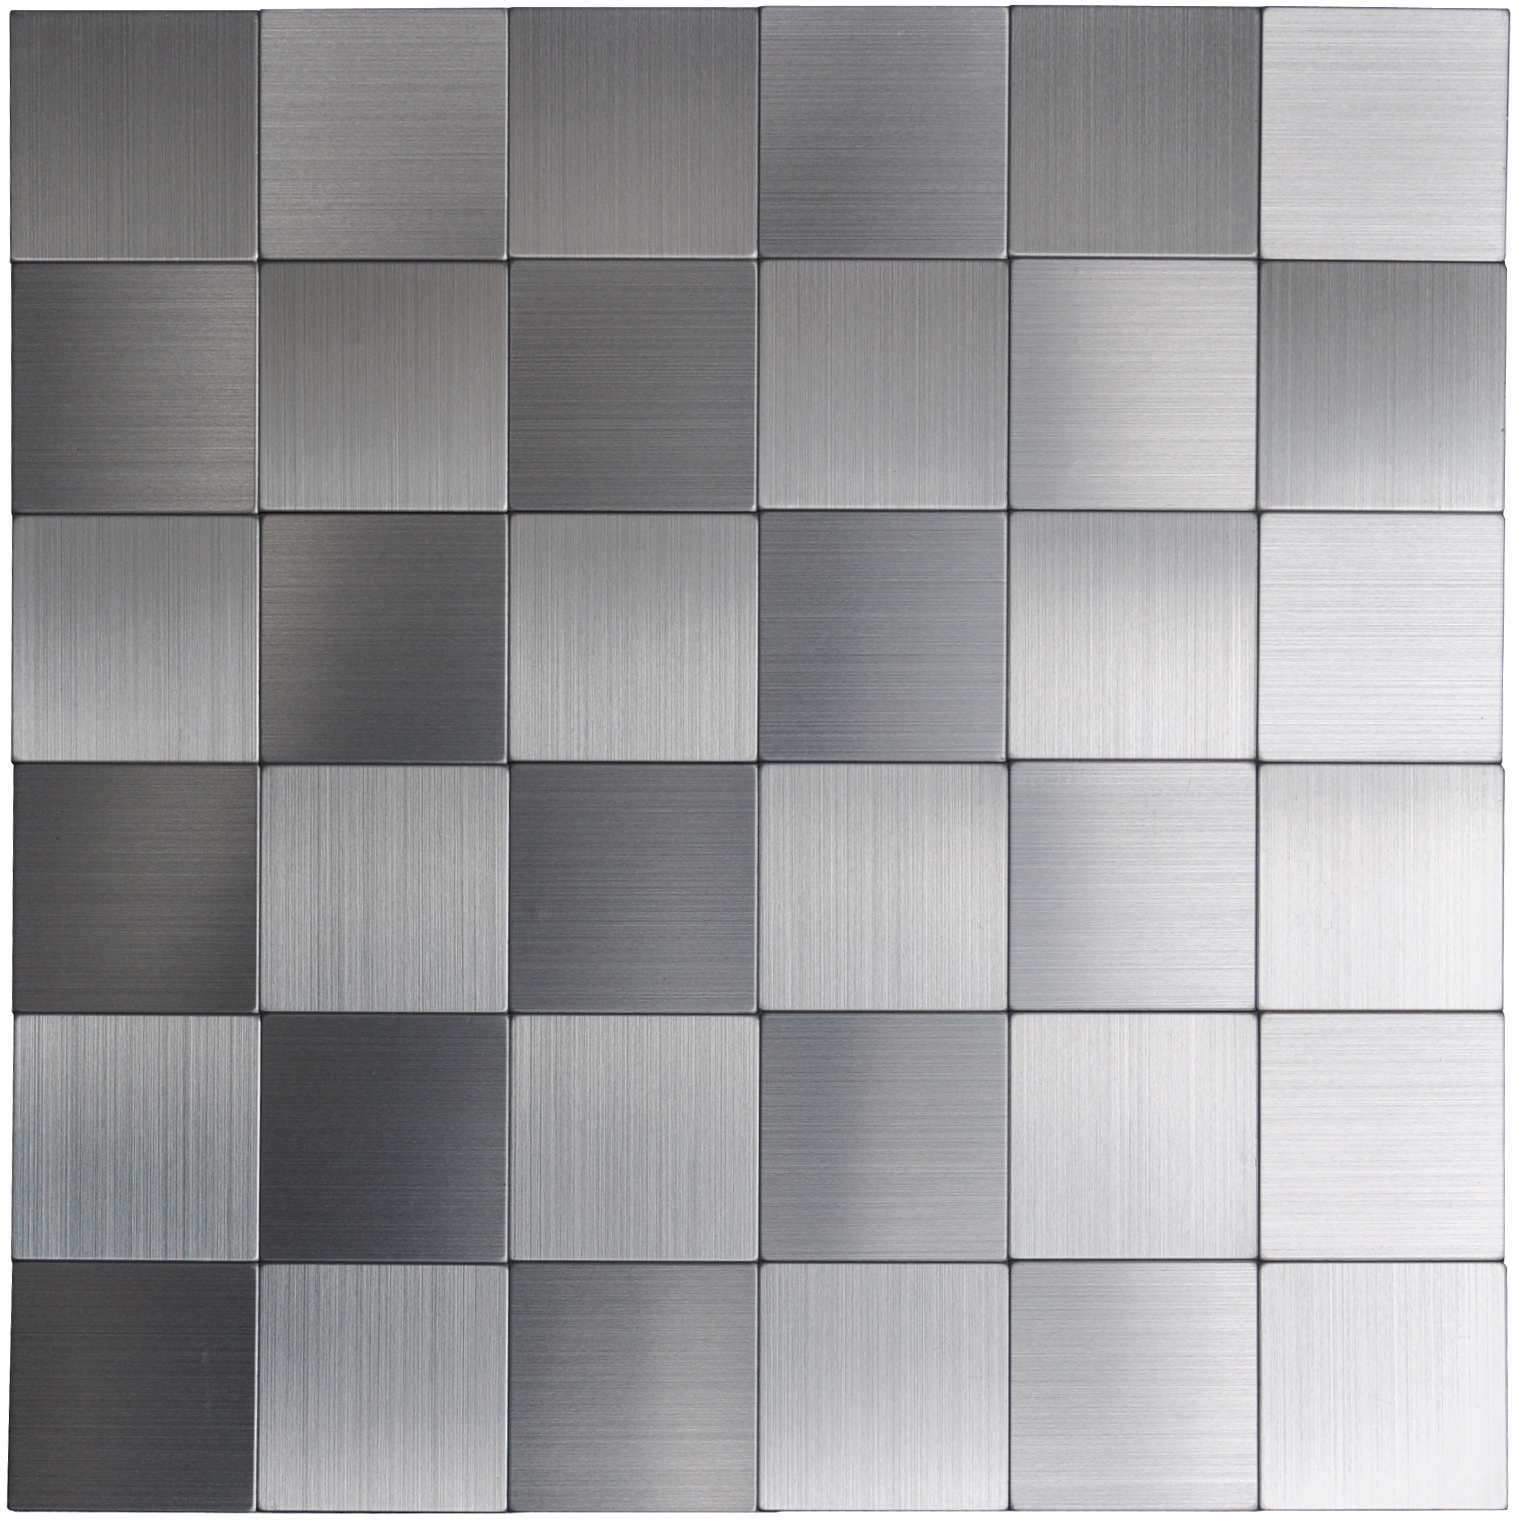 A16110 Self Adhesive Metal Tiles 10 Pcs Stainless Peel N Stick Backsplashes Tiles 12x12in